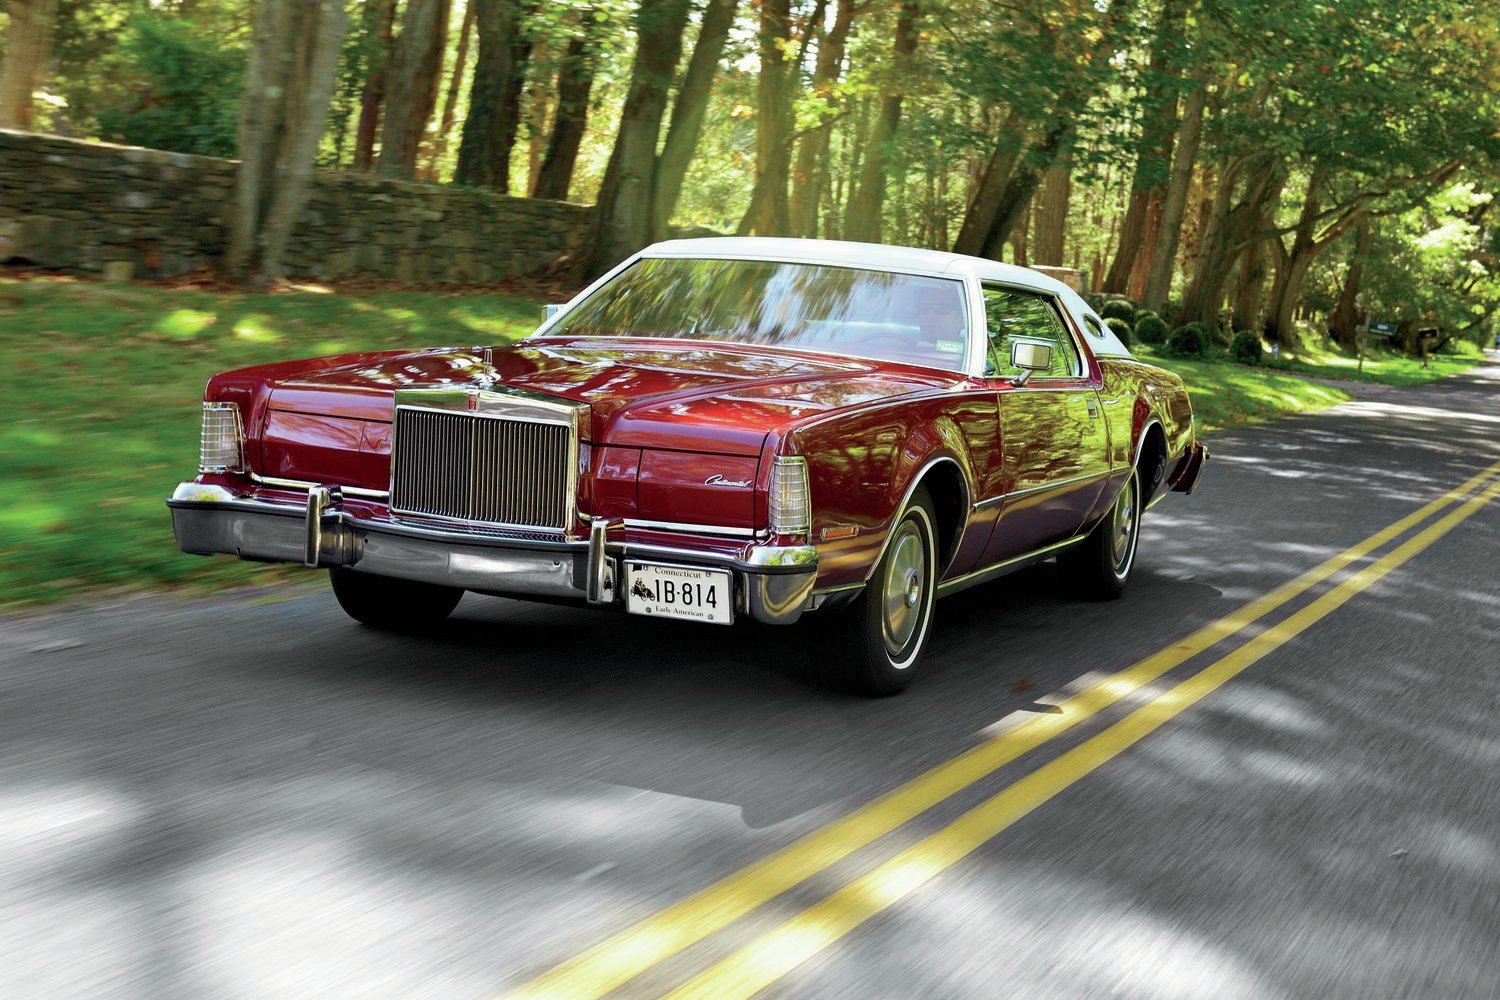 1974 Lincoln Continental Mark IV7